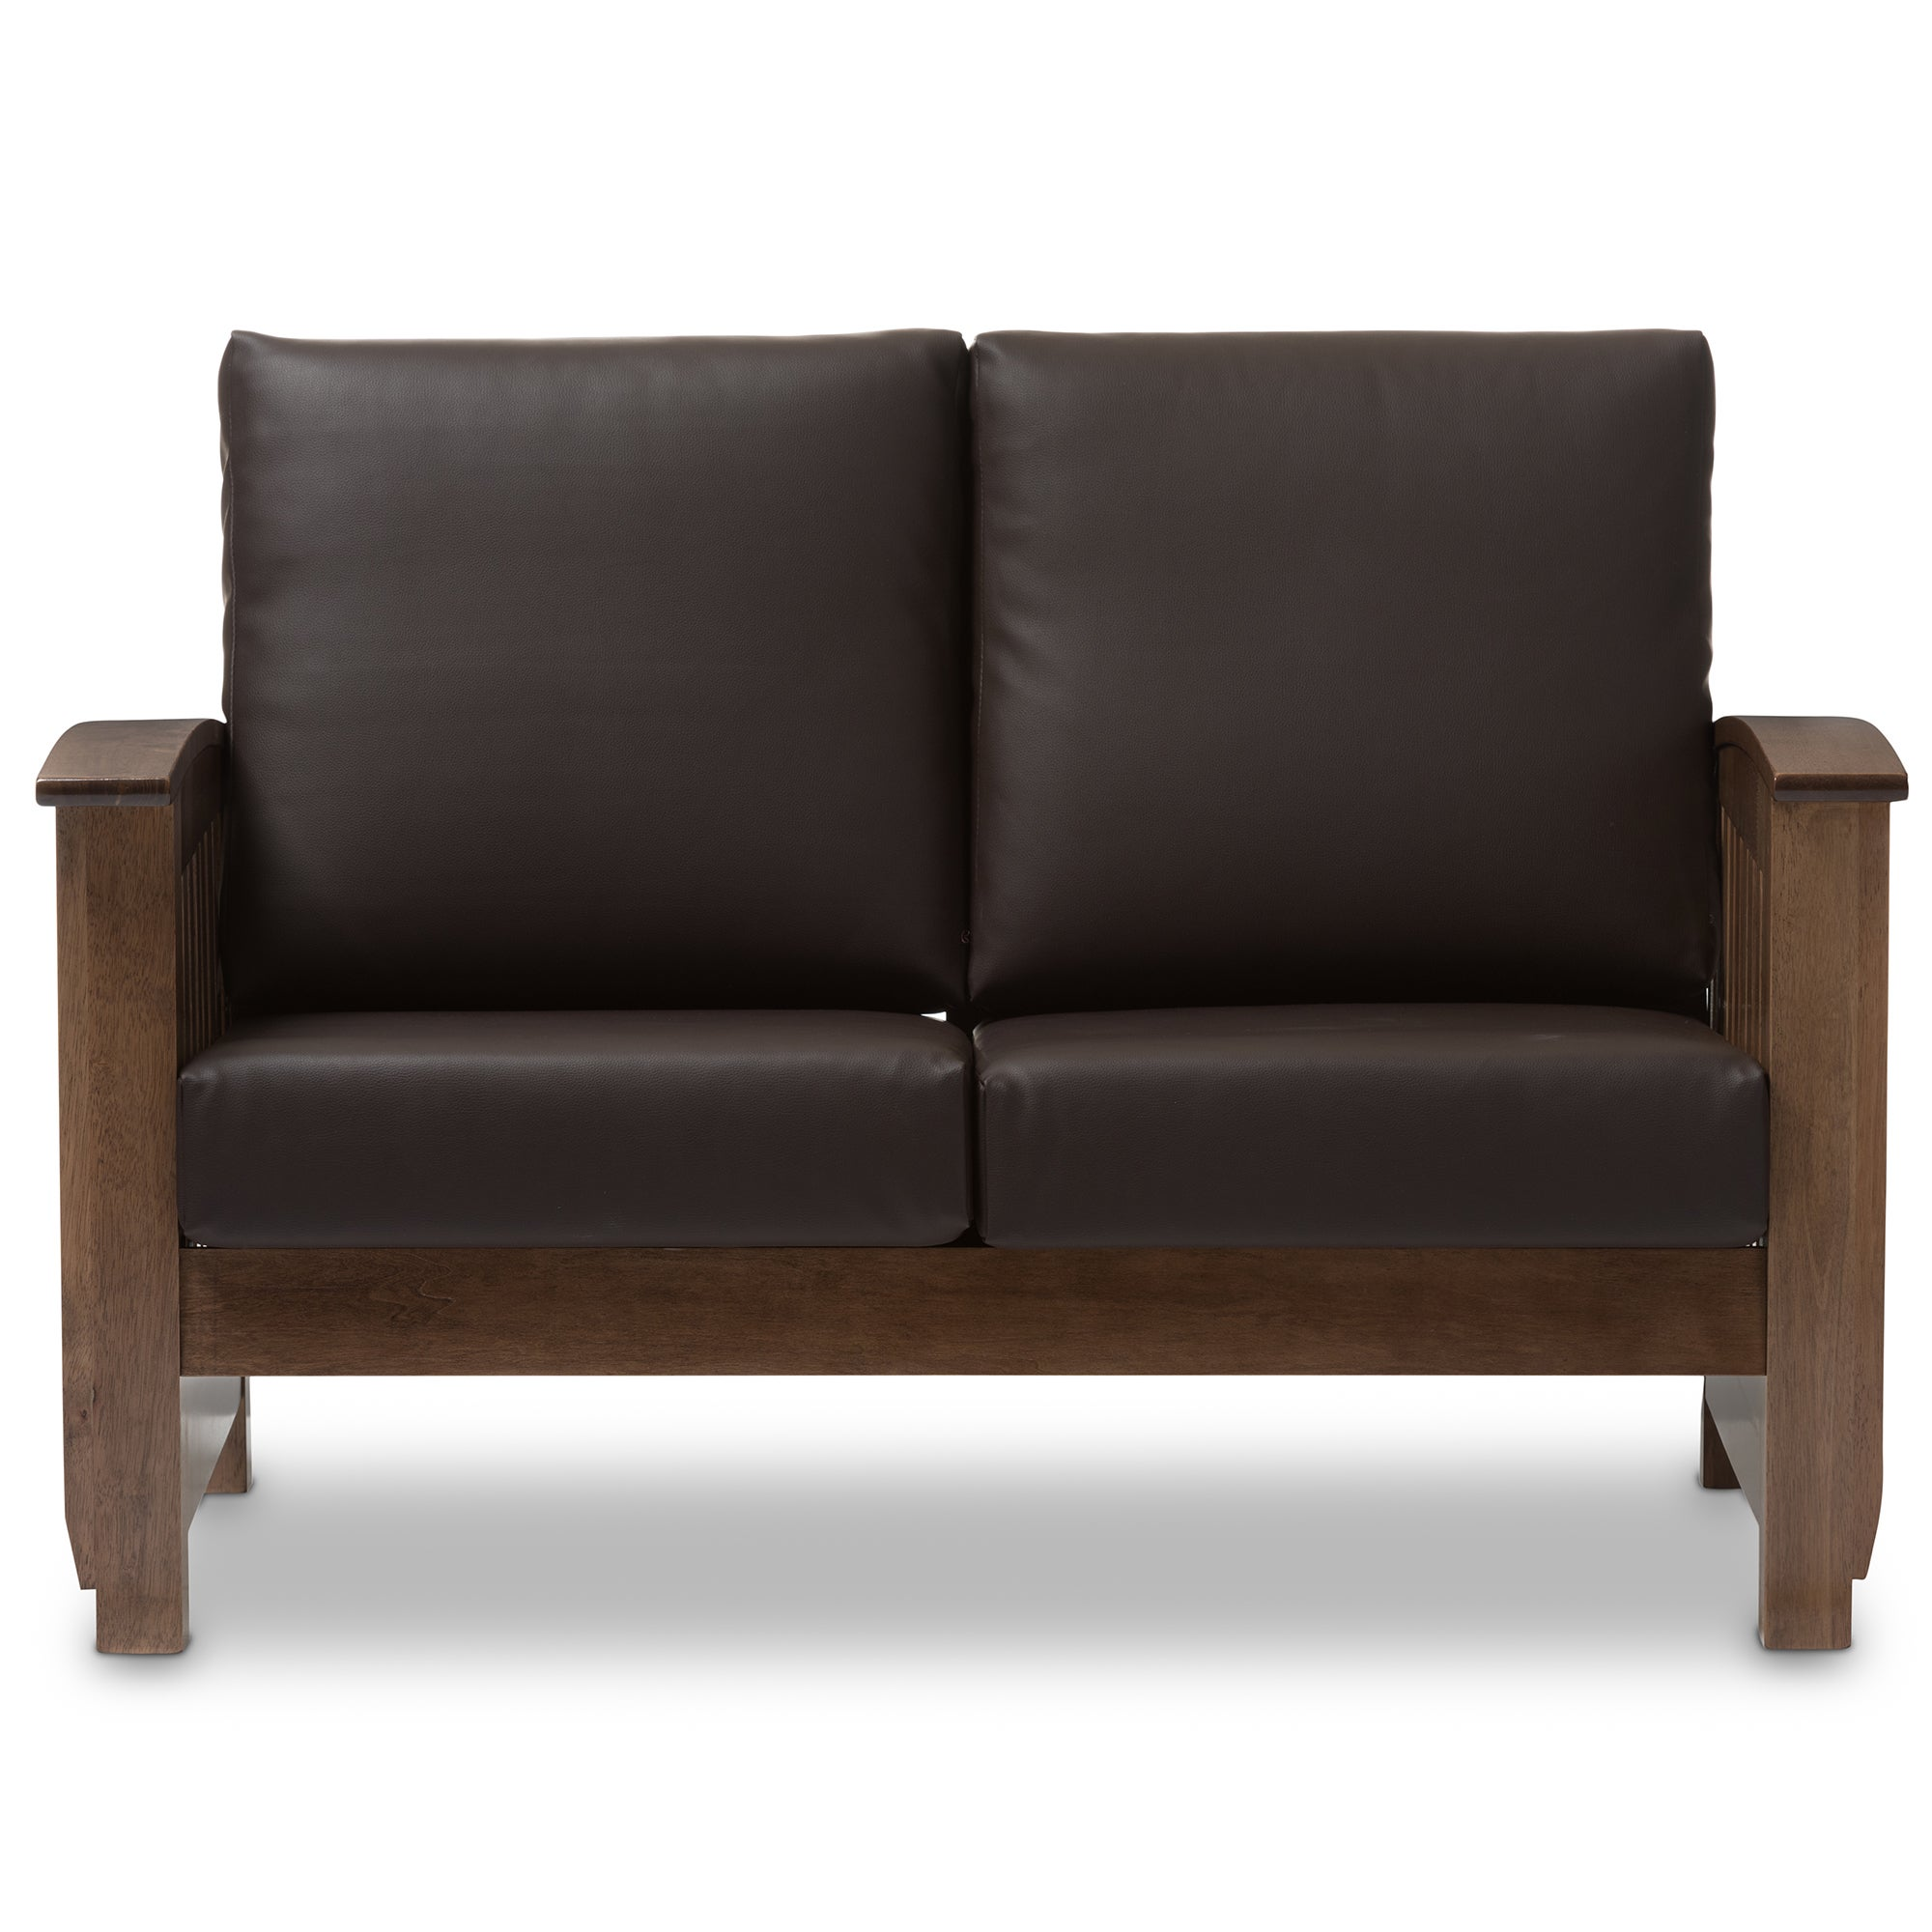 Mission Style Sofa Bed Voorhees Craftsman Mission Oak